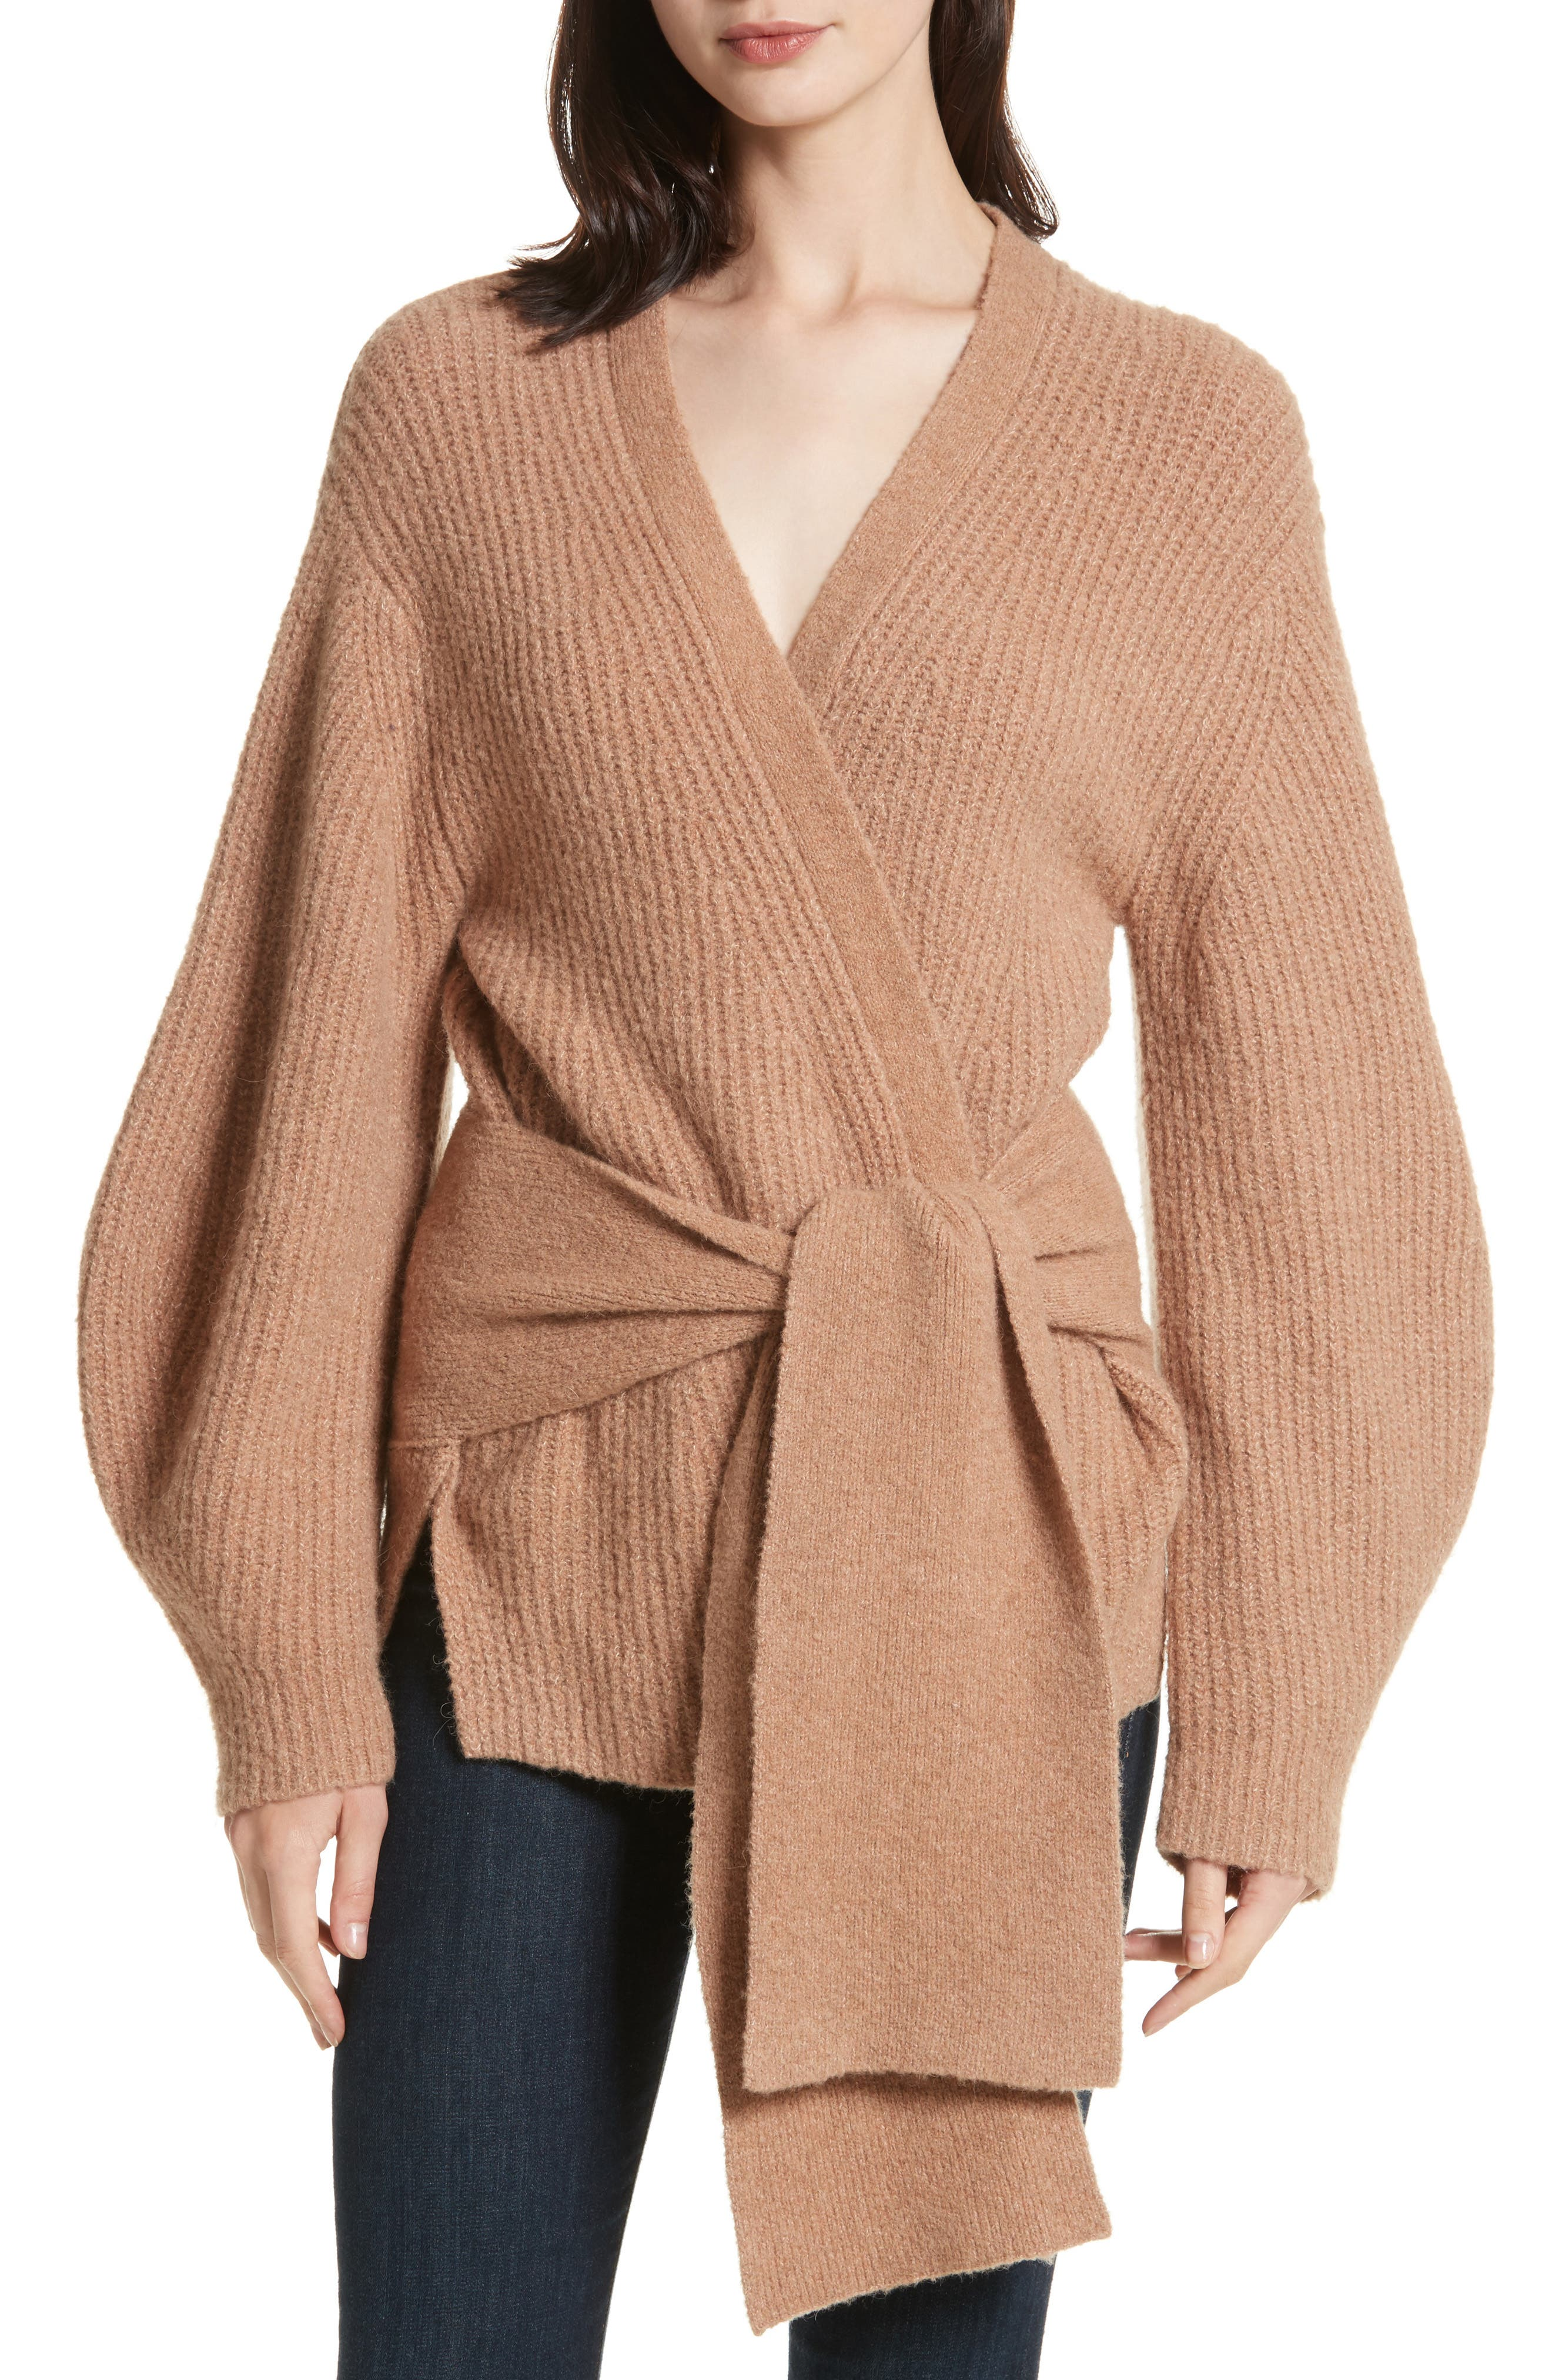 Hansen Belted Cardigan,                             Main thumbnail 1, color,                             020